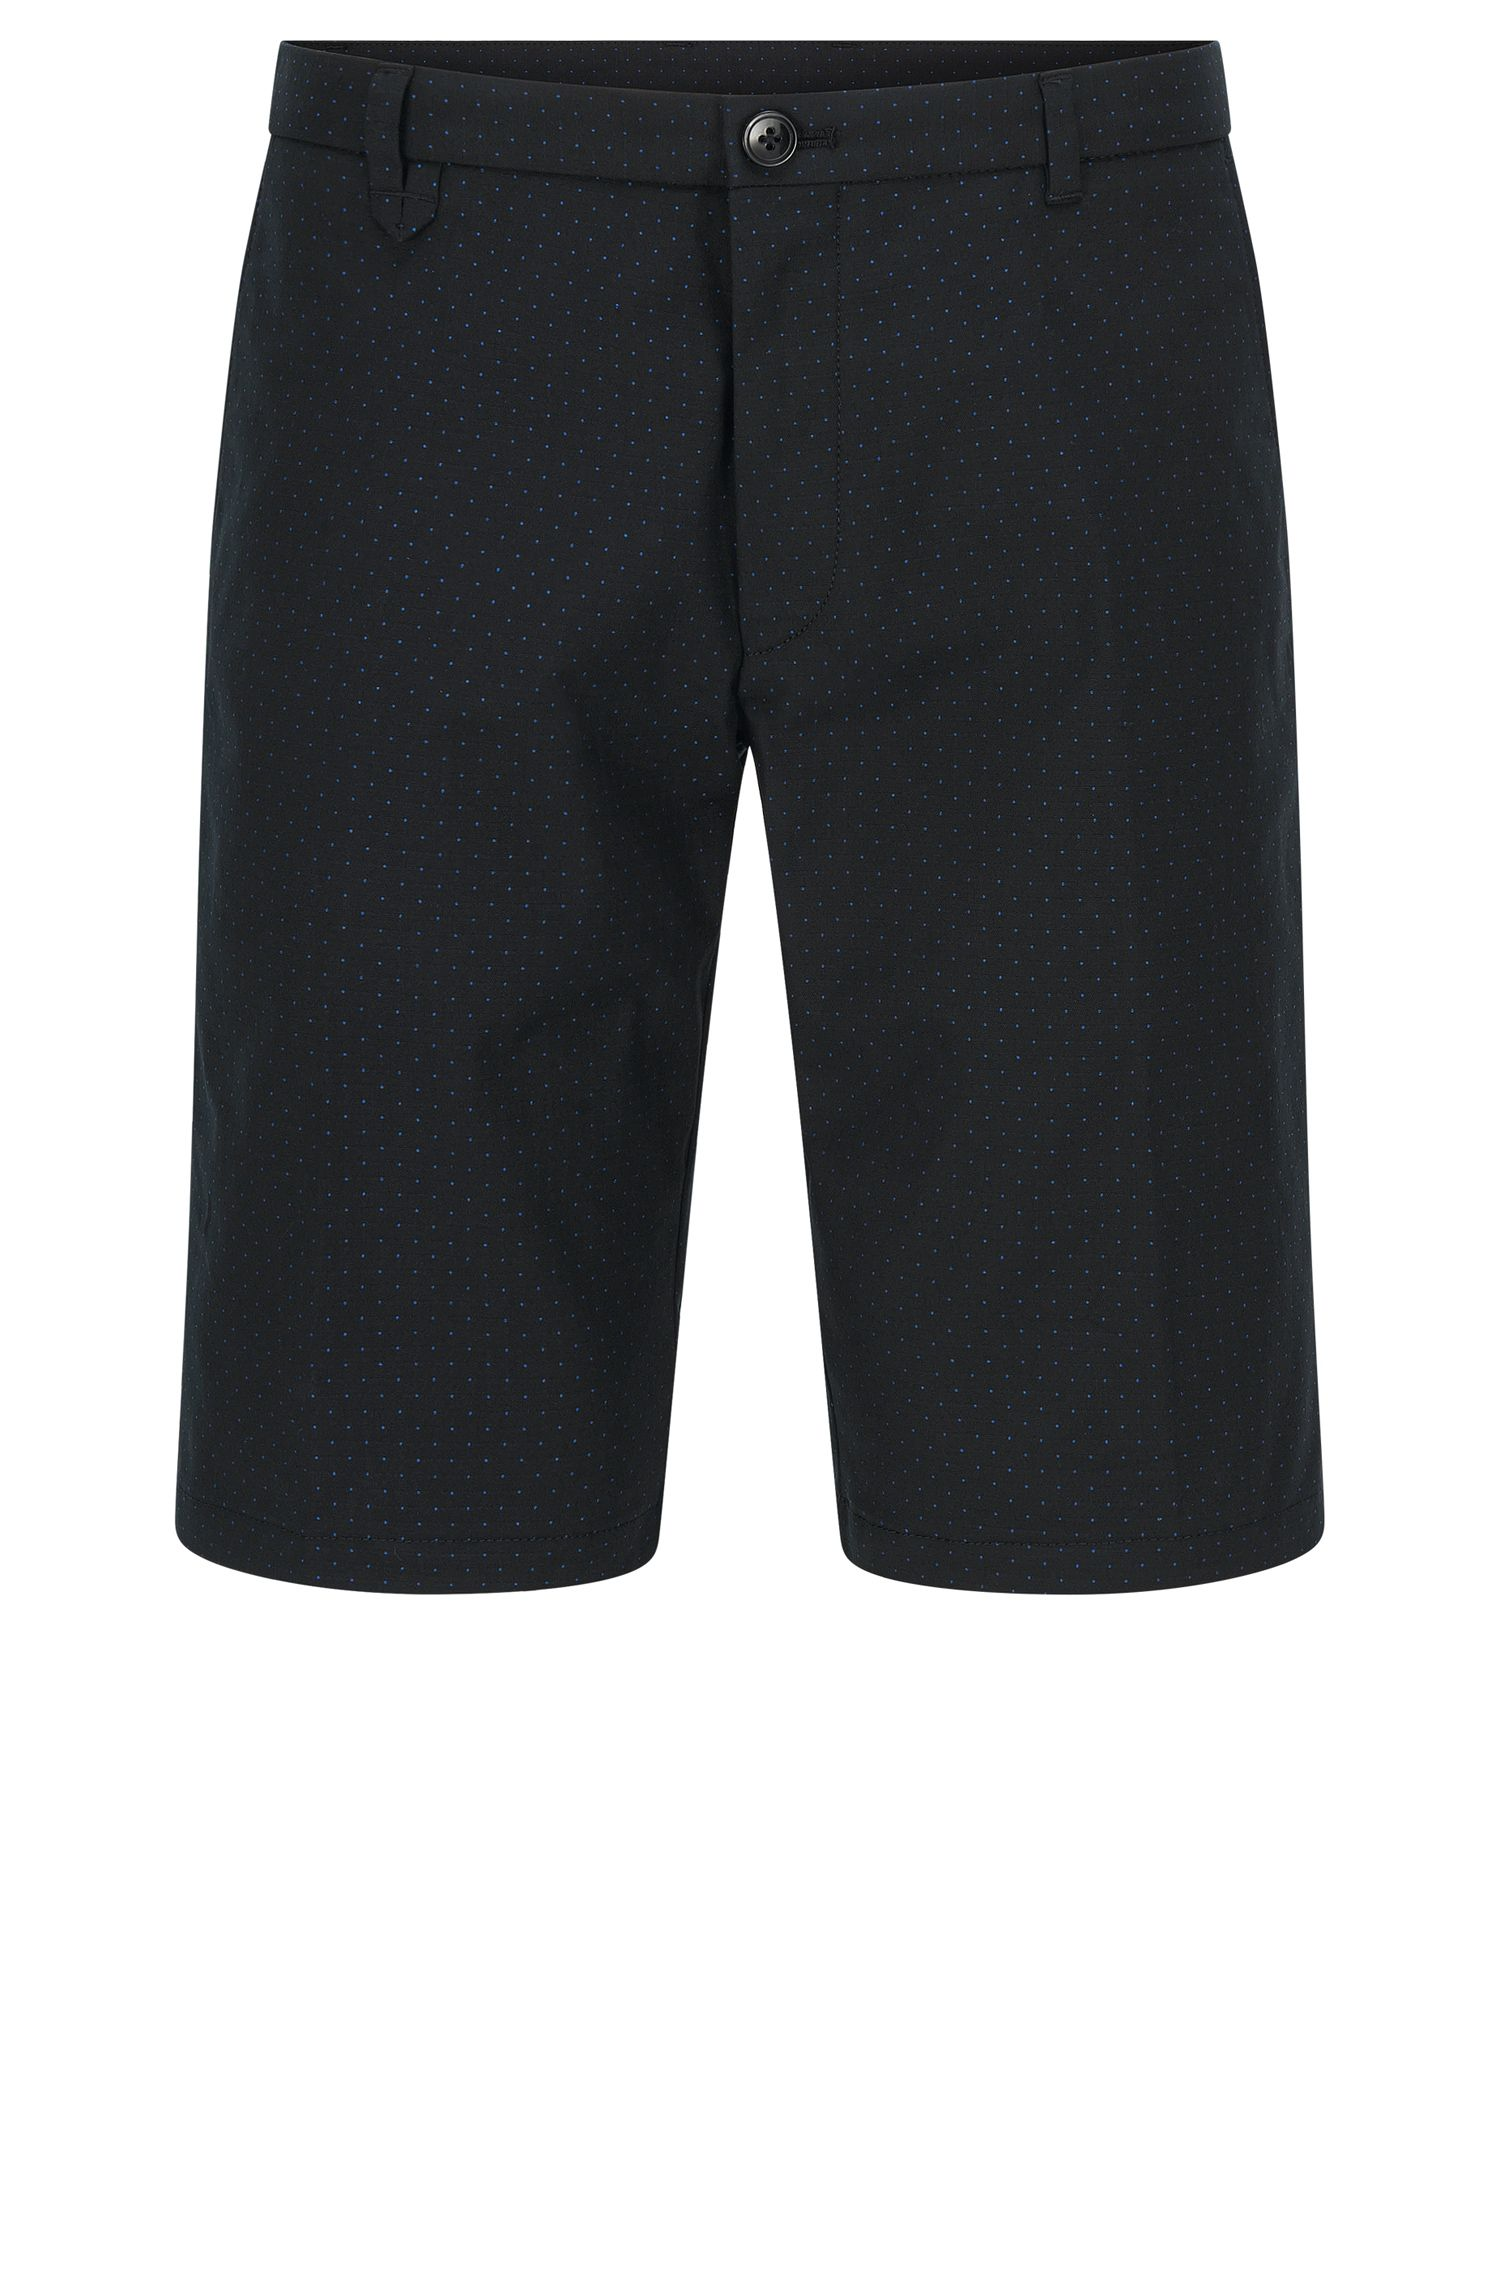 Polka-dot patterned slim-fit shorts in stretch cotton blend: 'Hano3'